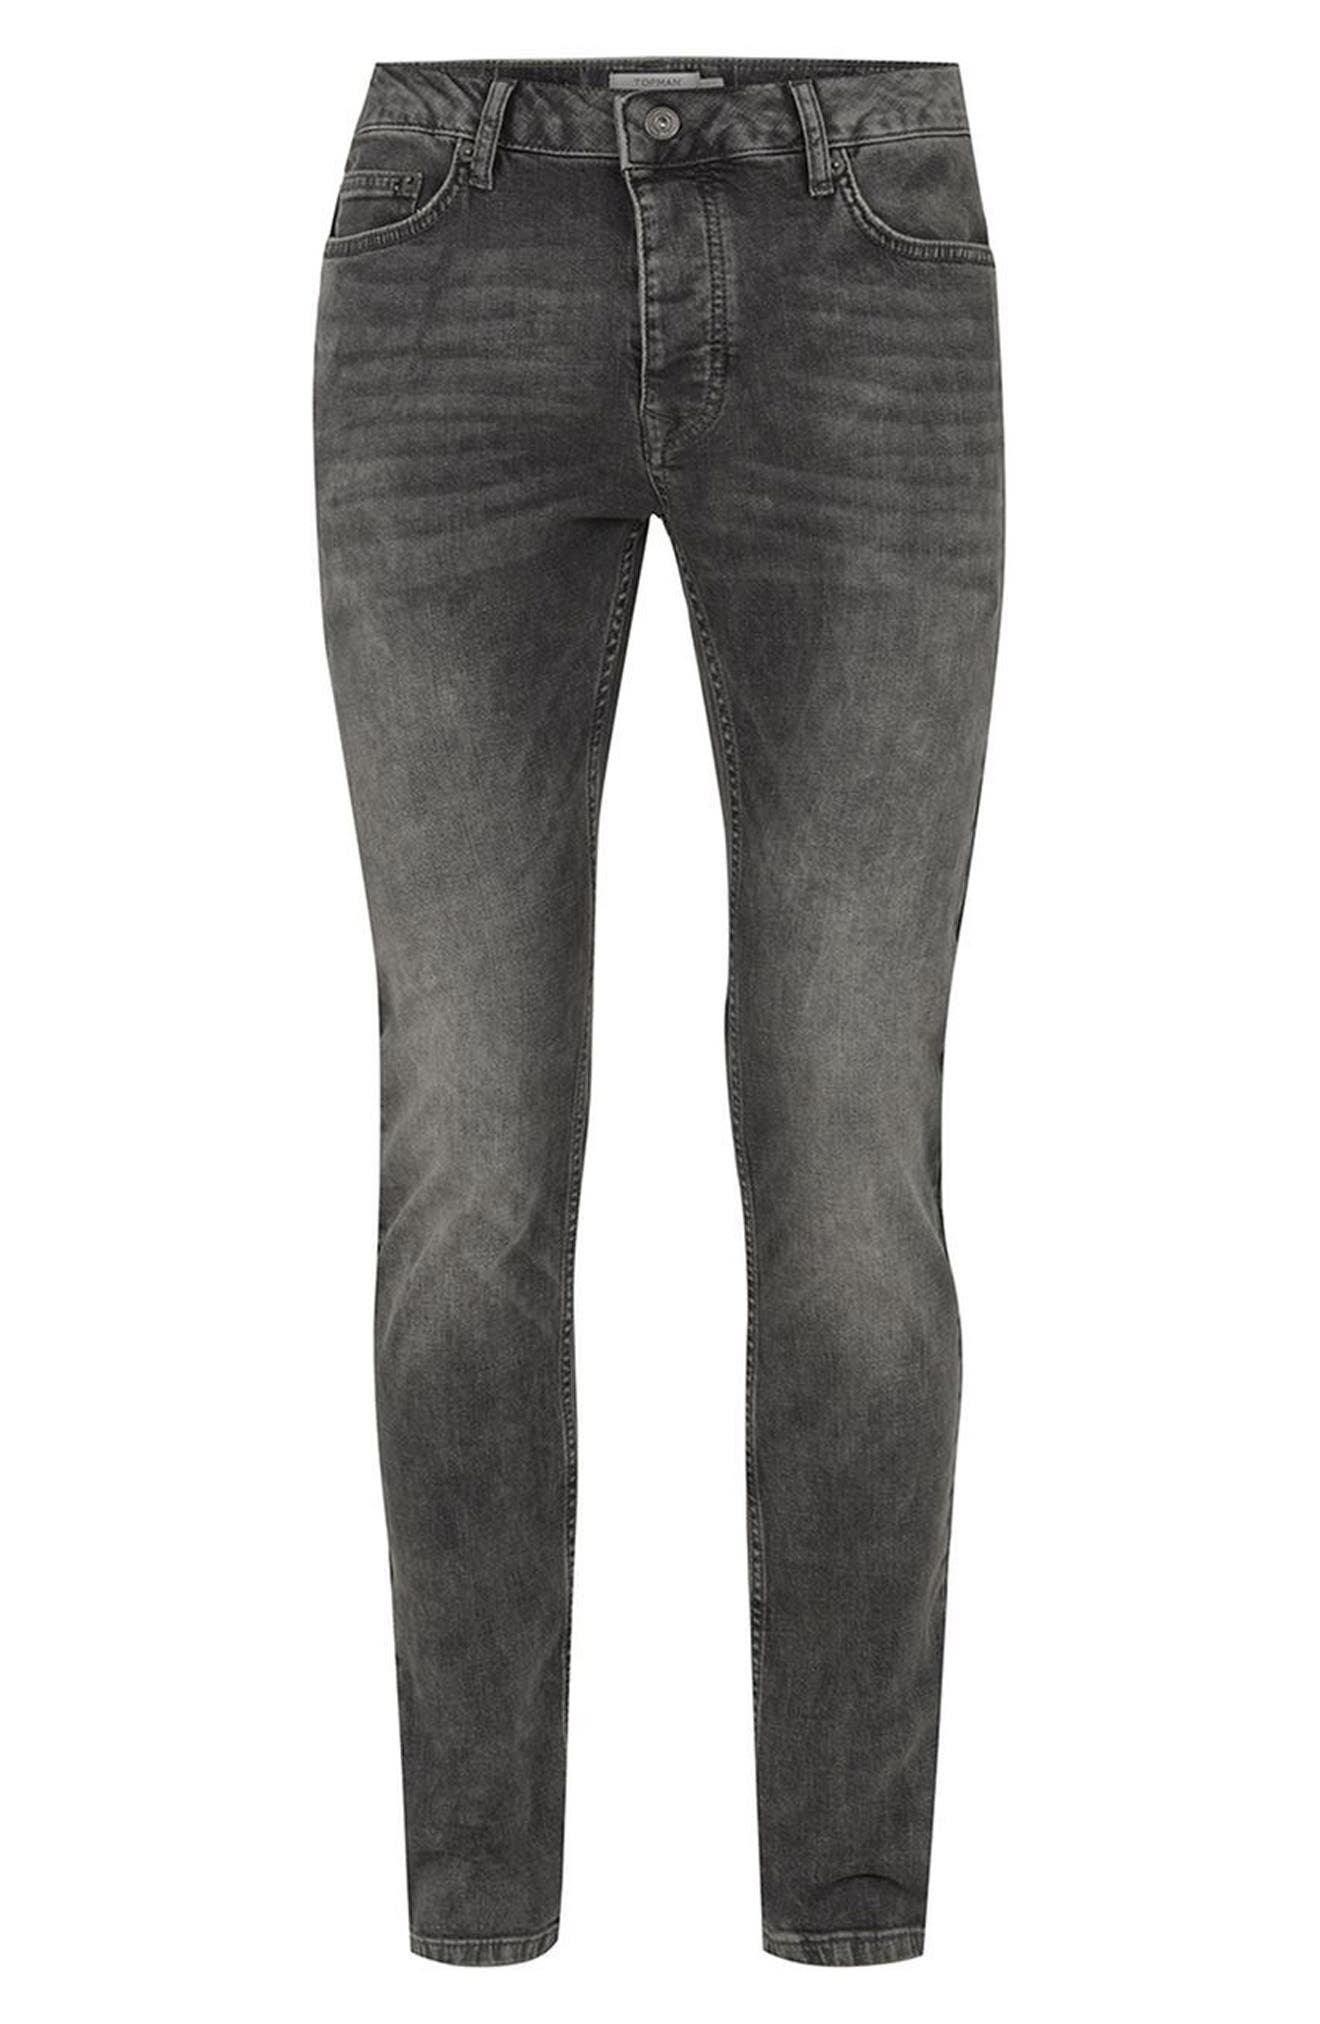 Grey Stretch Skinny Jeans,                             Alternate thumbnail 4, color,                             020